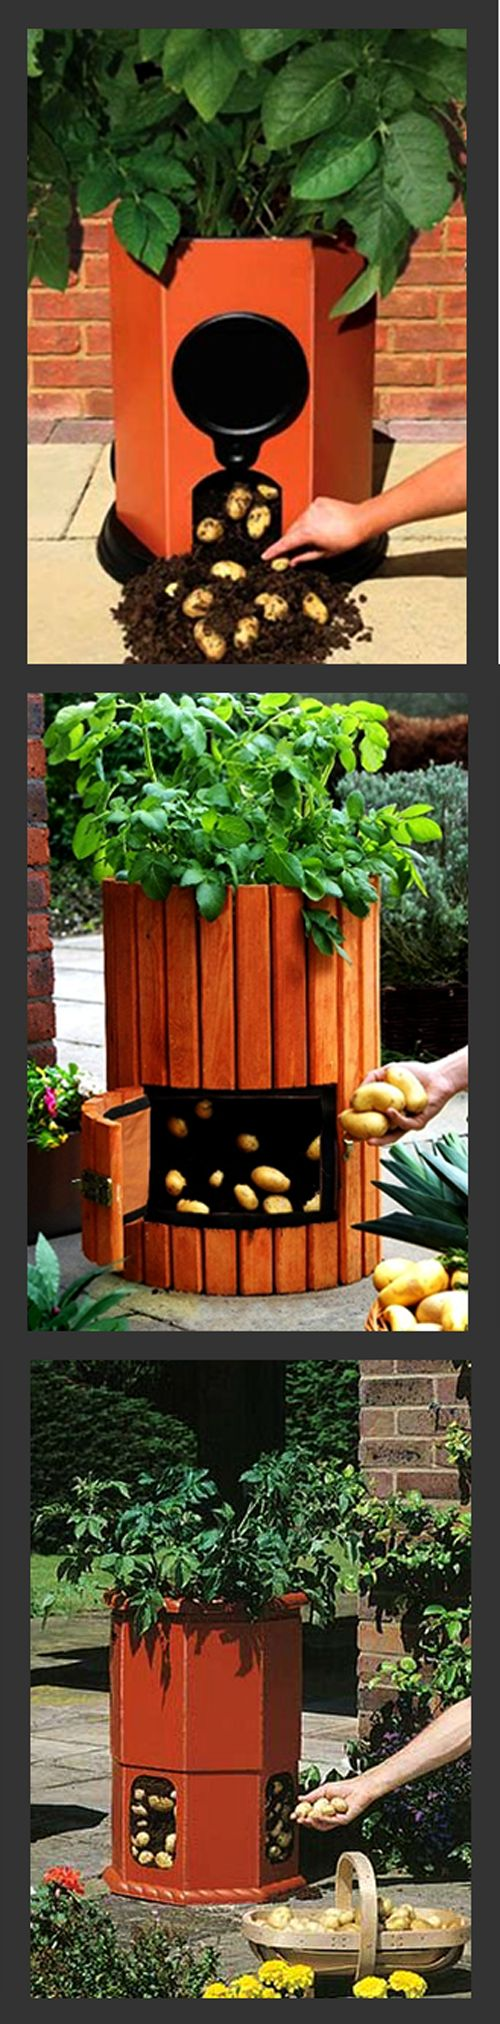 Most beautiful vegetable gardens - 14 Diy Ideas For Your Garden Decoration 11